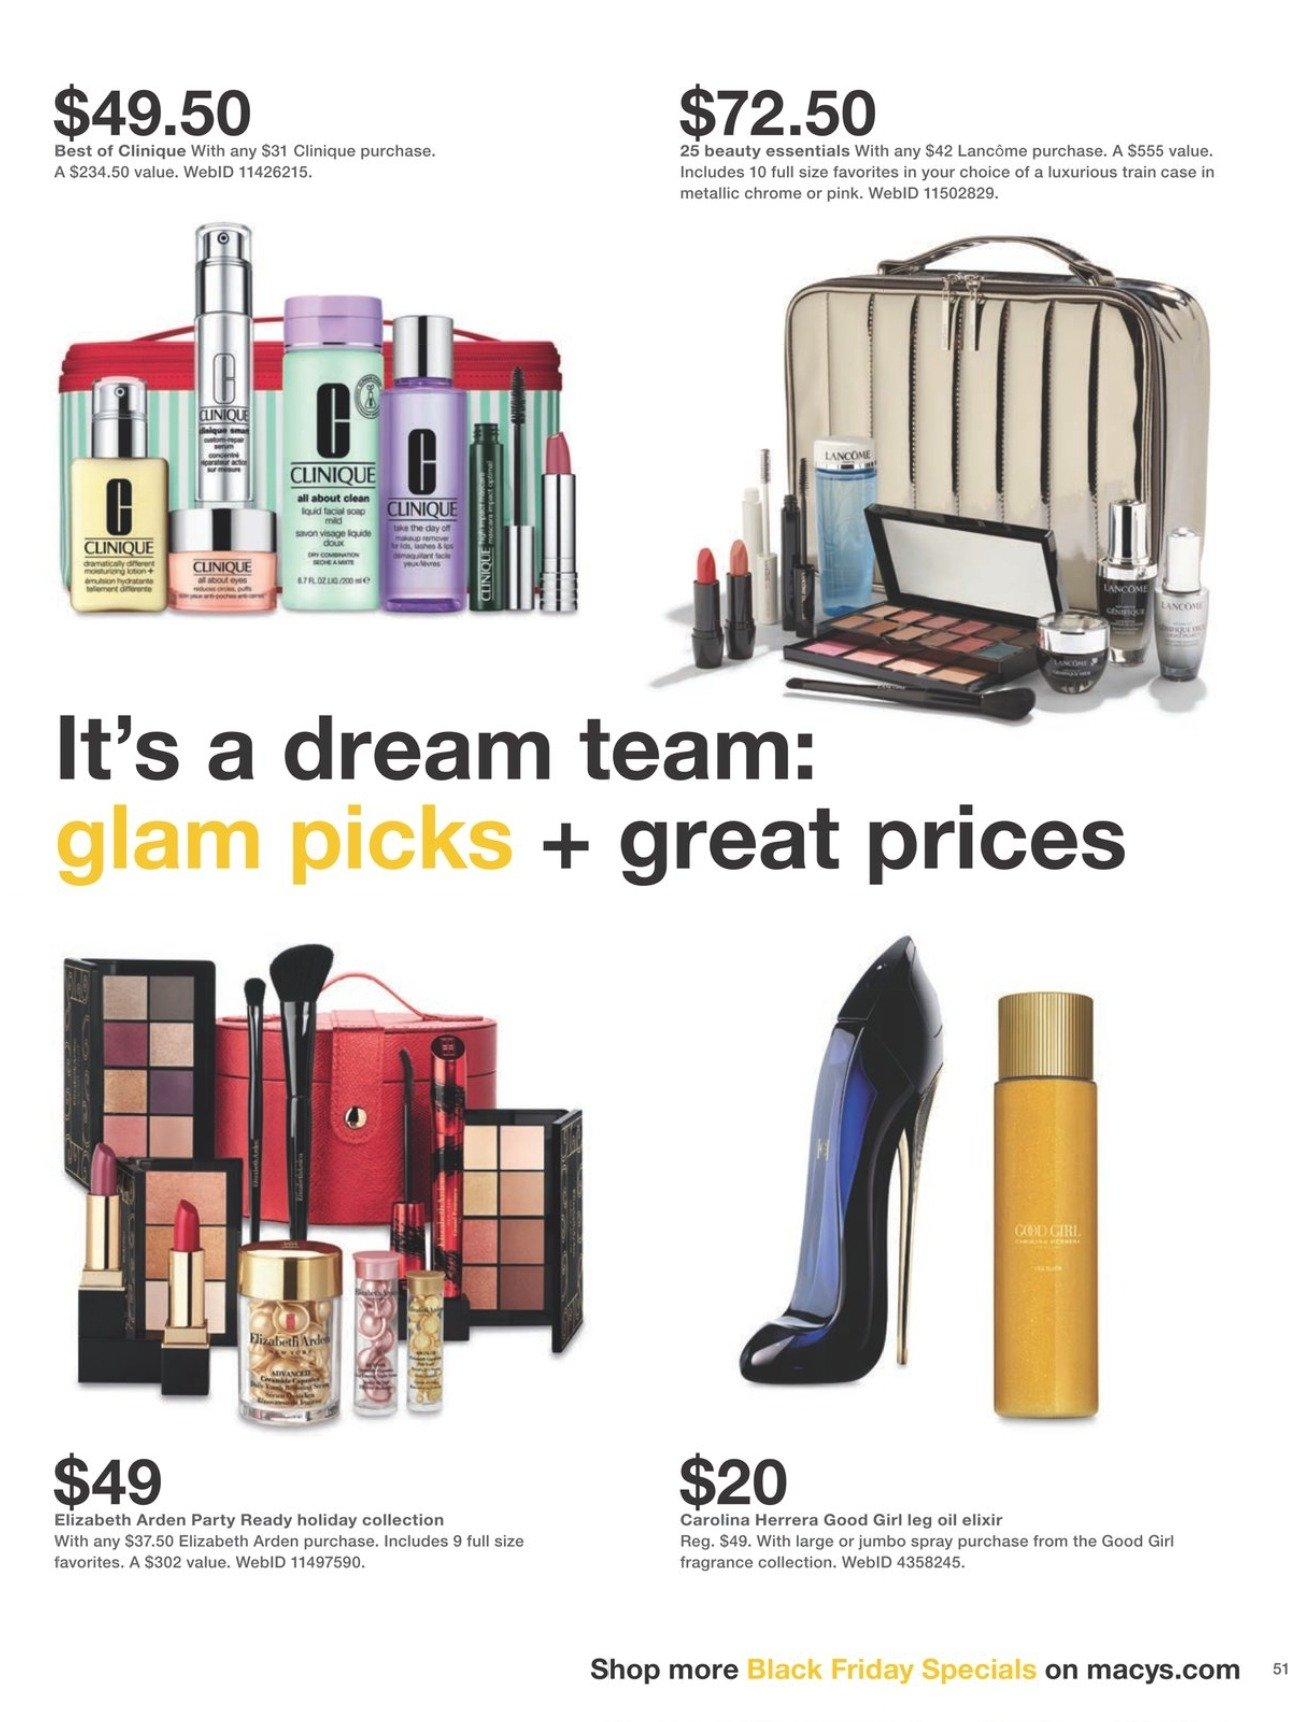 Macy's Black Friday 2020 Page 51